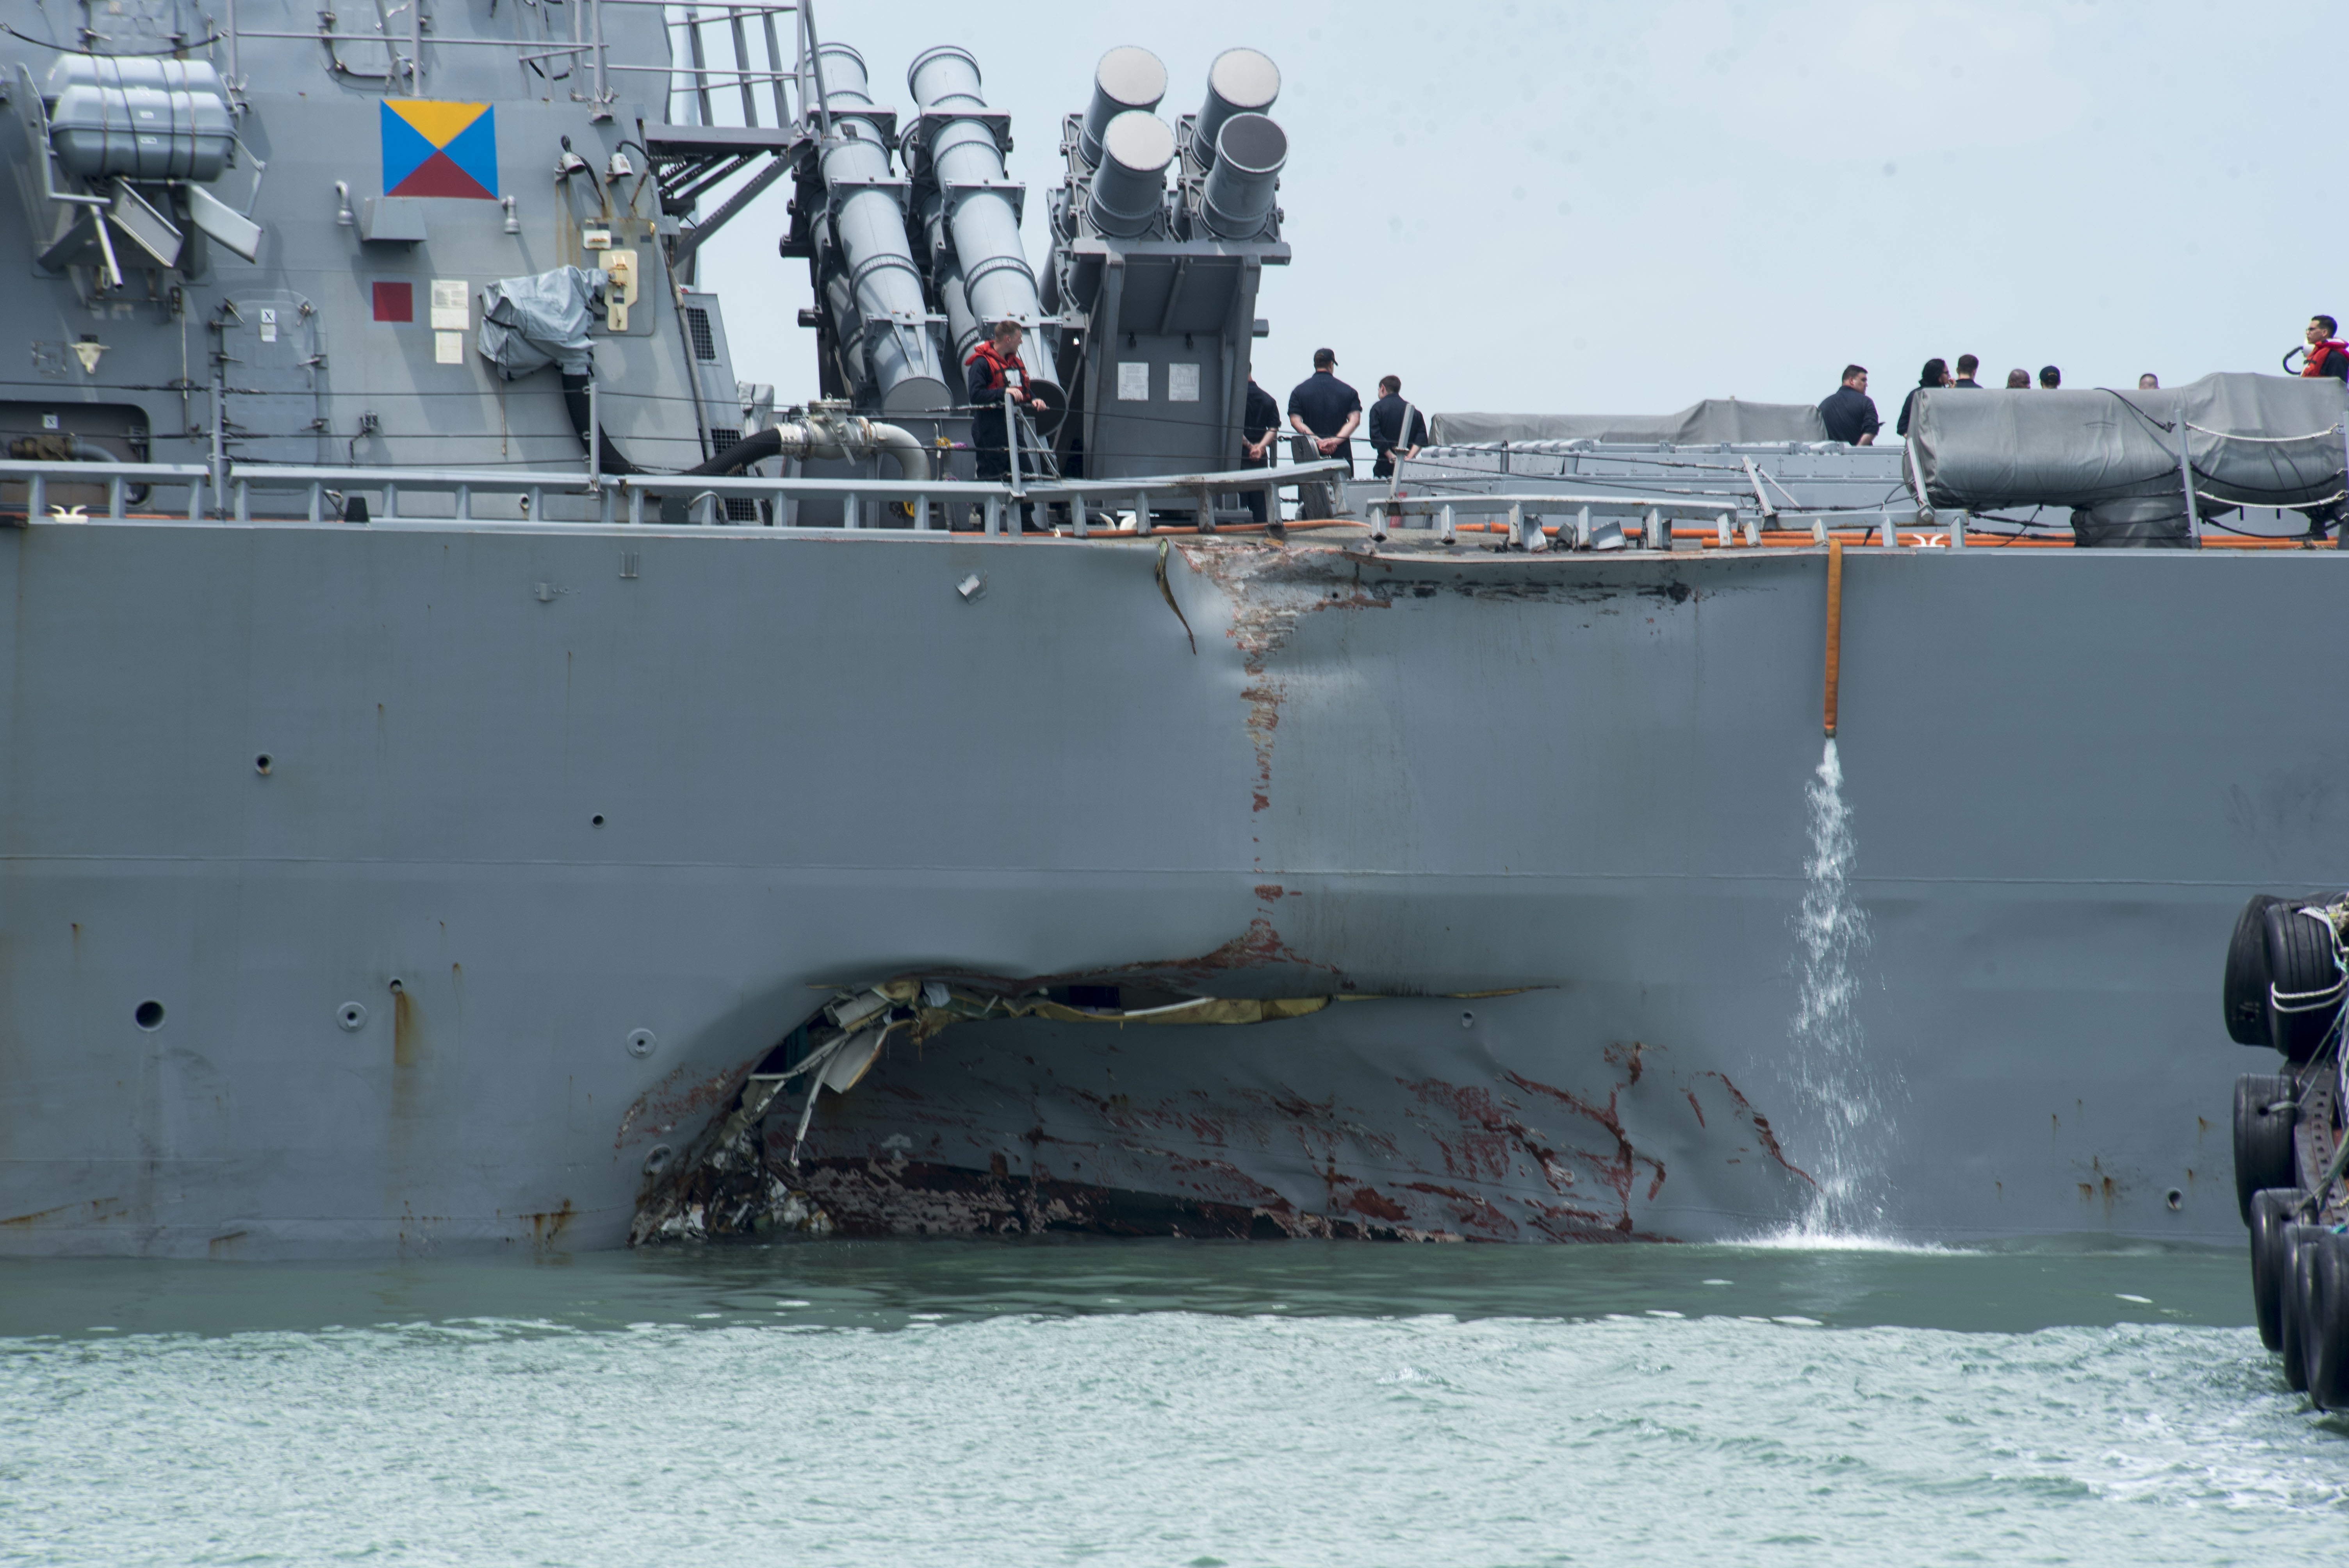 Navy Opens Cyber-Collision Probes, Changes AIS Policy